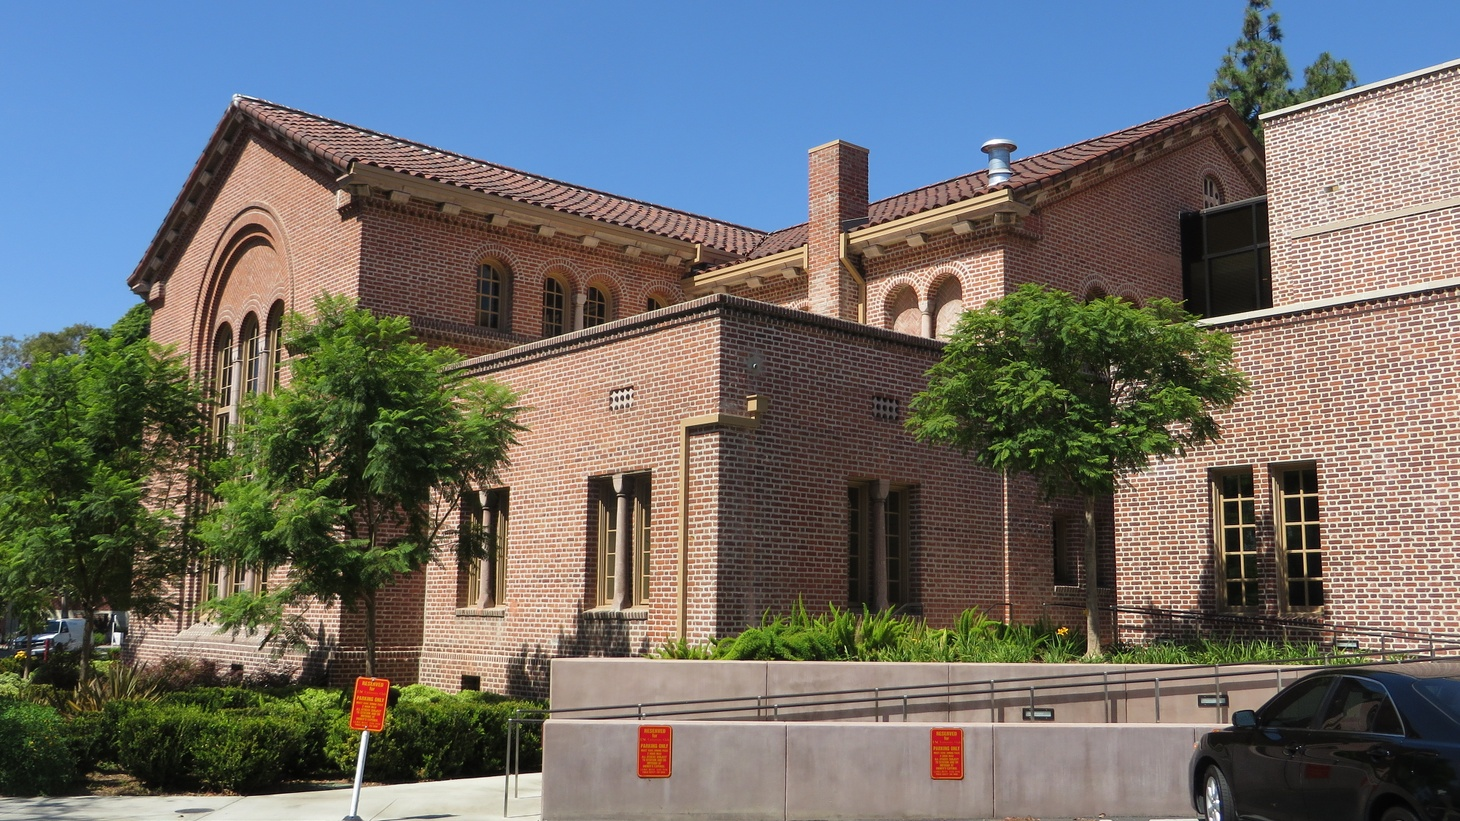 The USC University Club, University of Southern California (USC), Los Angeles, California